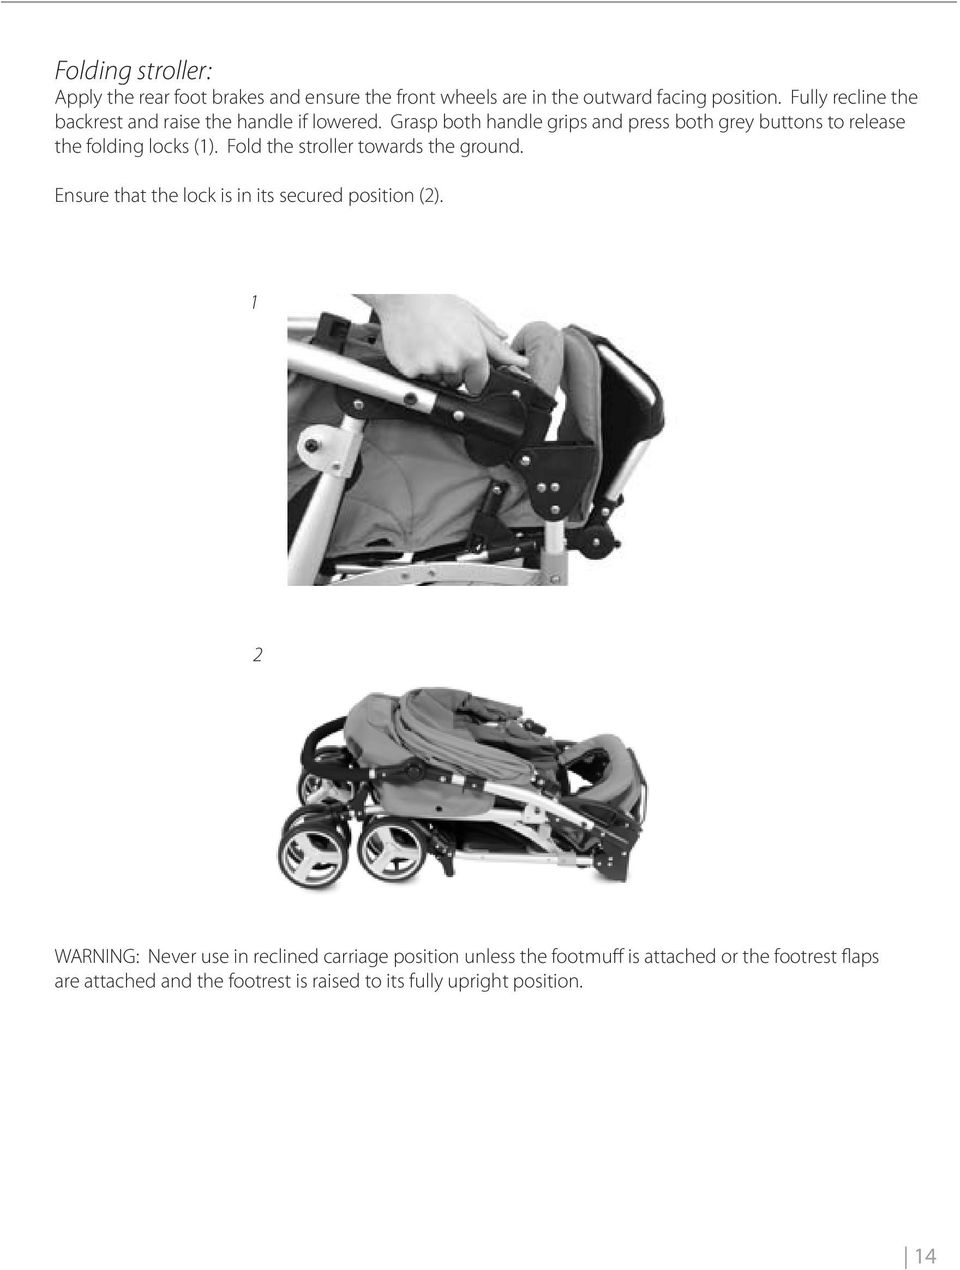 Fold the stroller towards the ground. Ensure that the lock is in its secured position ().